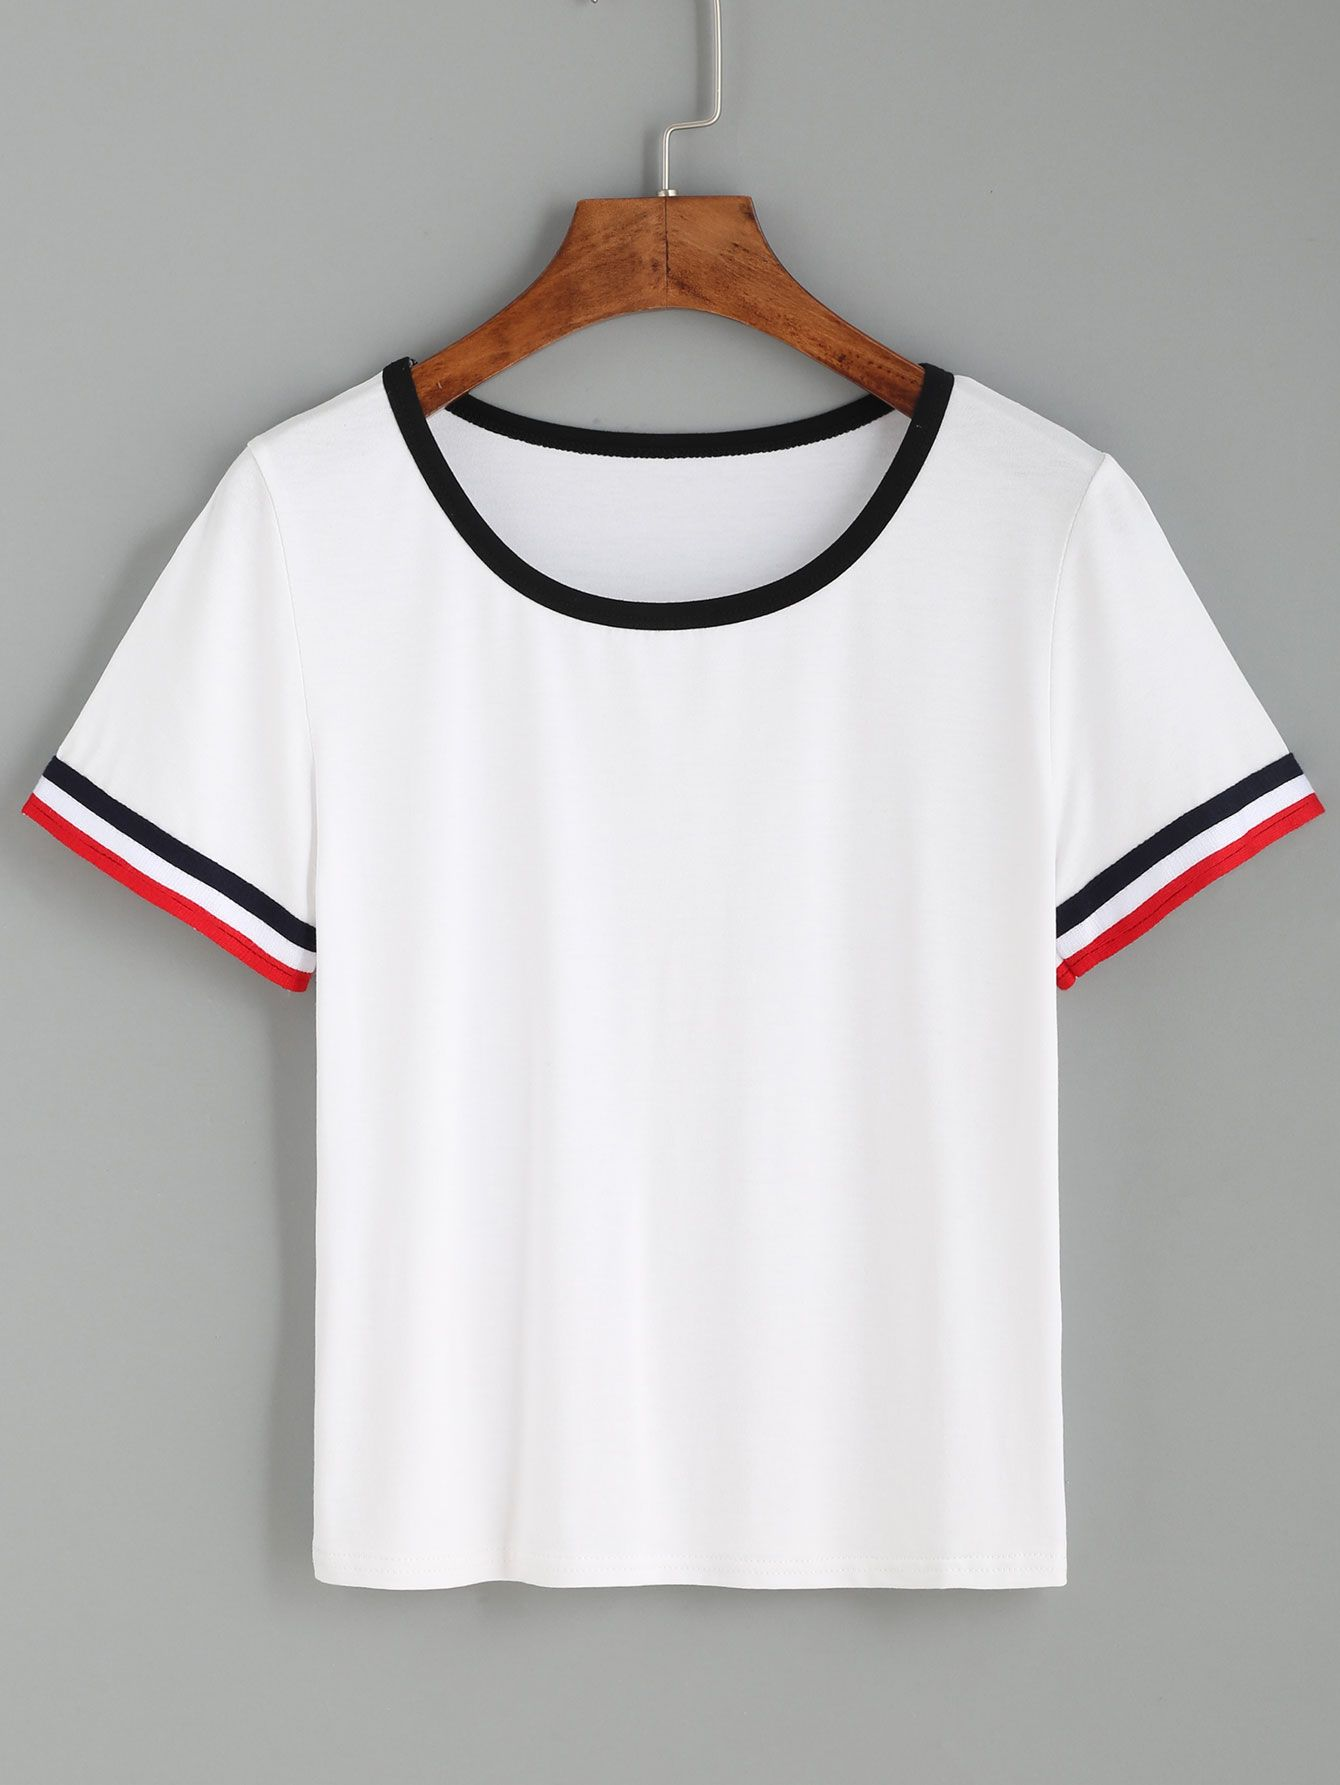 White Striped Cuff Short Sleeve T-shirt — 0.00 € ----------------color: White size: one-size